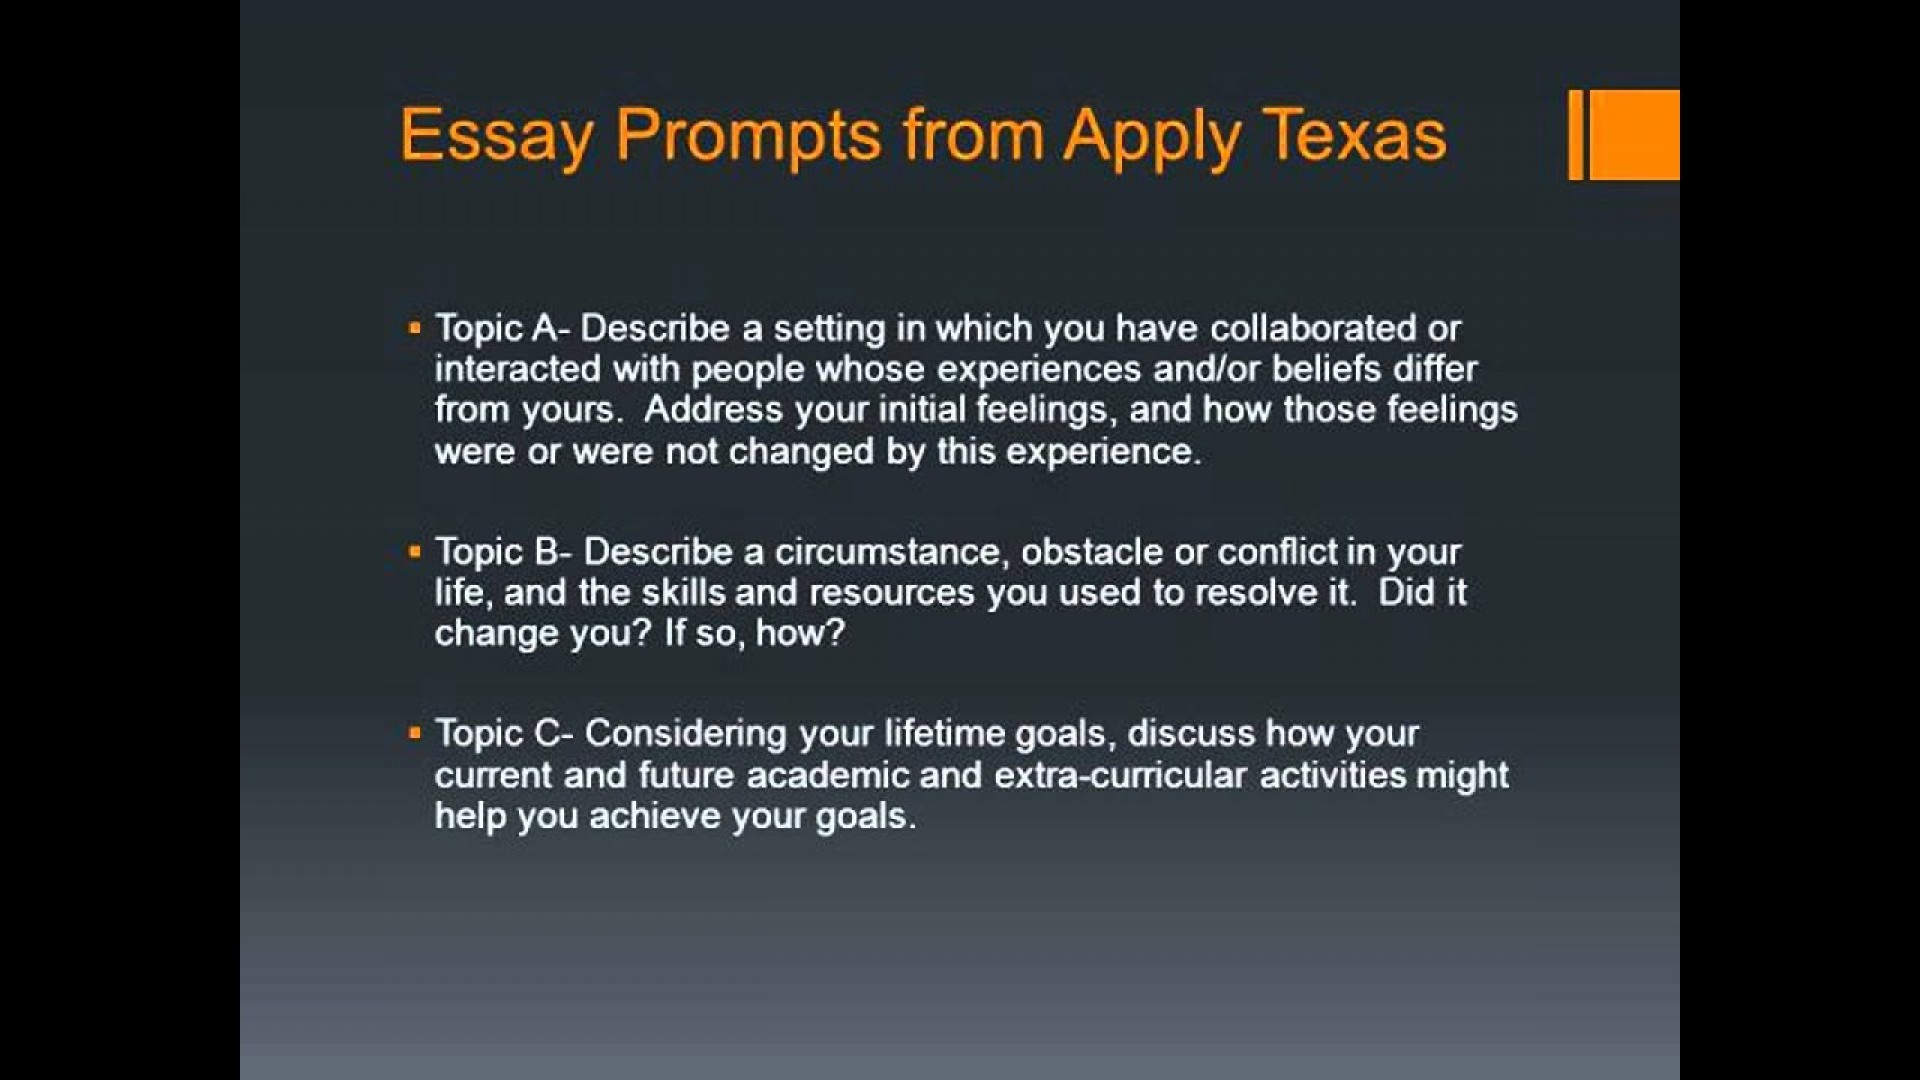 014 Apply Texas Essay Examples Example Surprising A College Prompts Topic C 1920